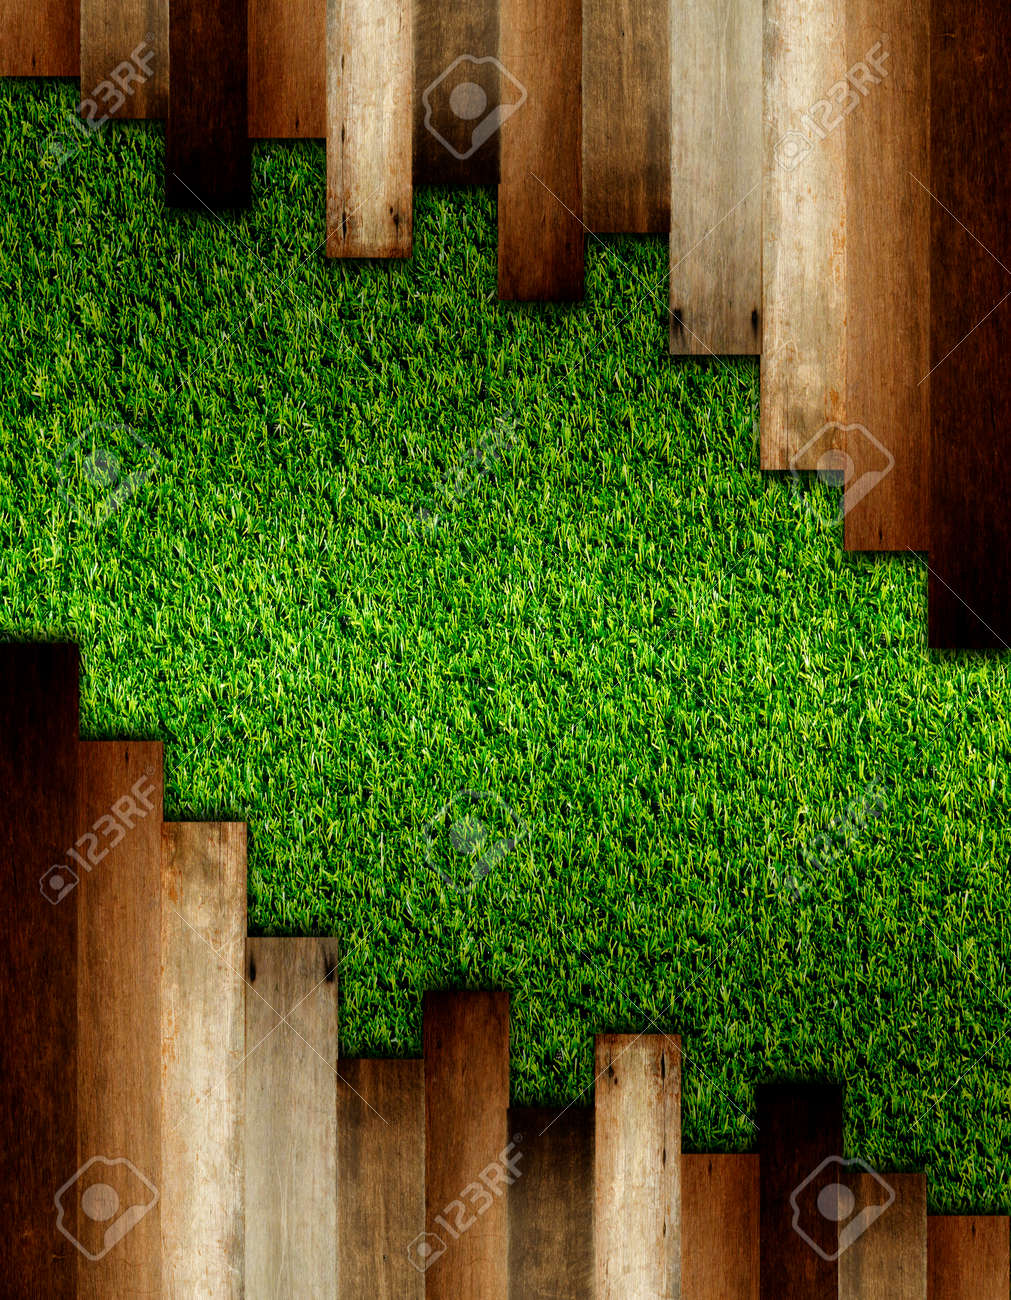 wooden on green artificial turf pattern ,texture for background. - 57695857